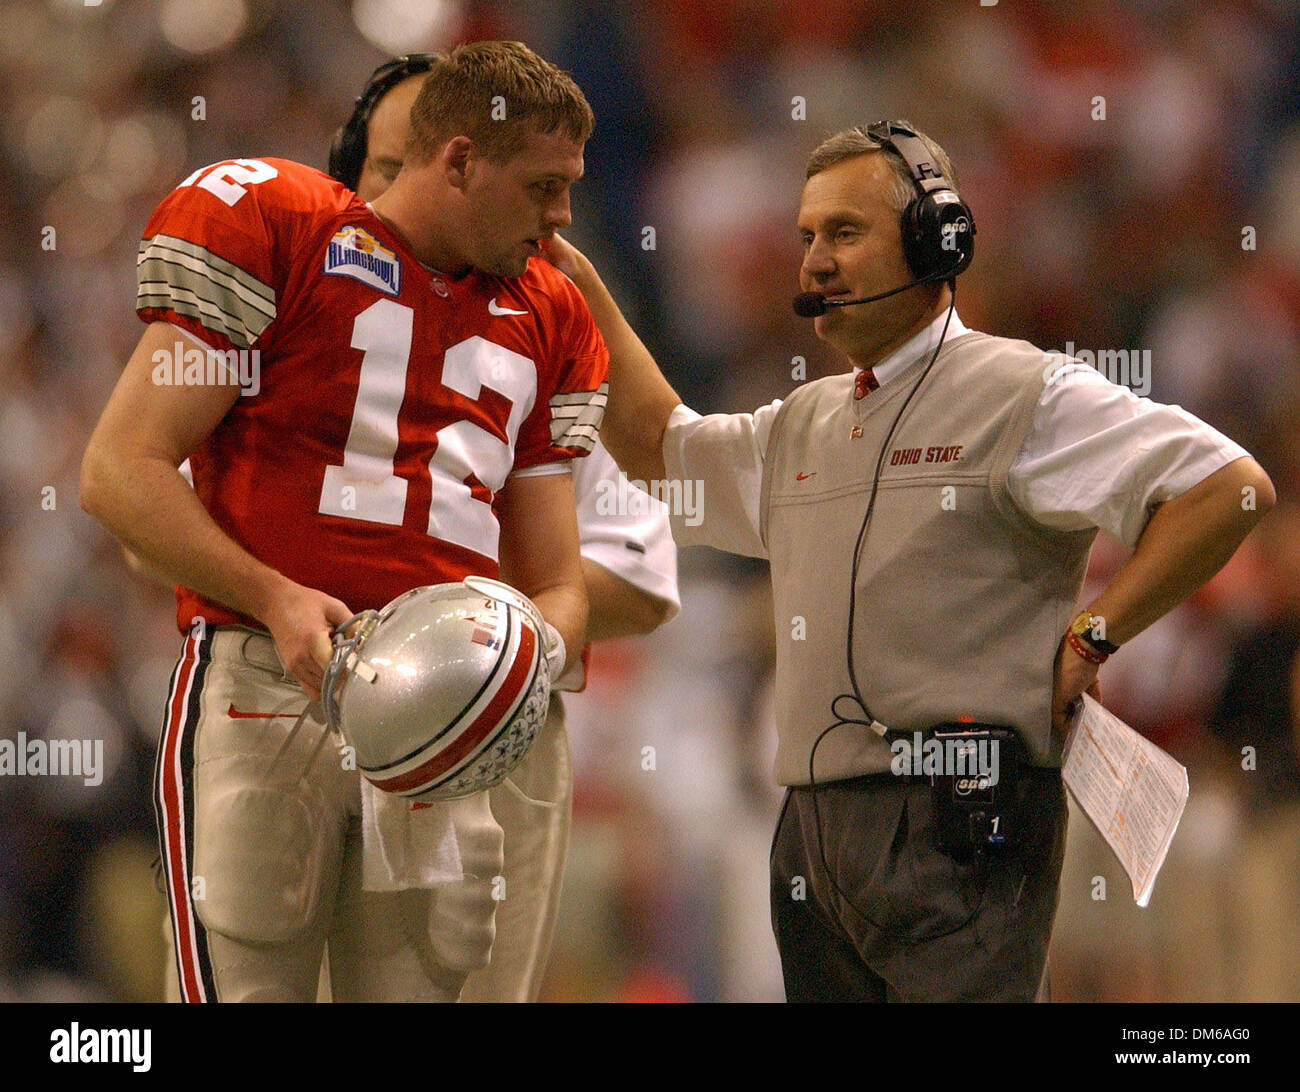 Dec 29, 2004; San Antonio, TX, USA; NCAA Football - Ohio State's head coach Jim Tressel talks with his QB Justin Zwick (12) during 2004 MasterCard Alamo Bowl at the Alamo dome in San Antonio. - Stock Image